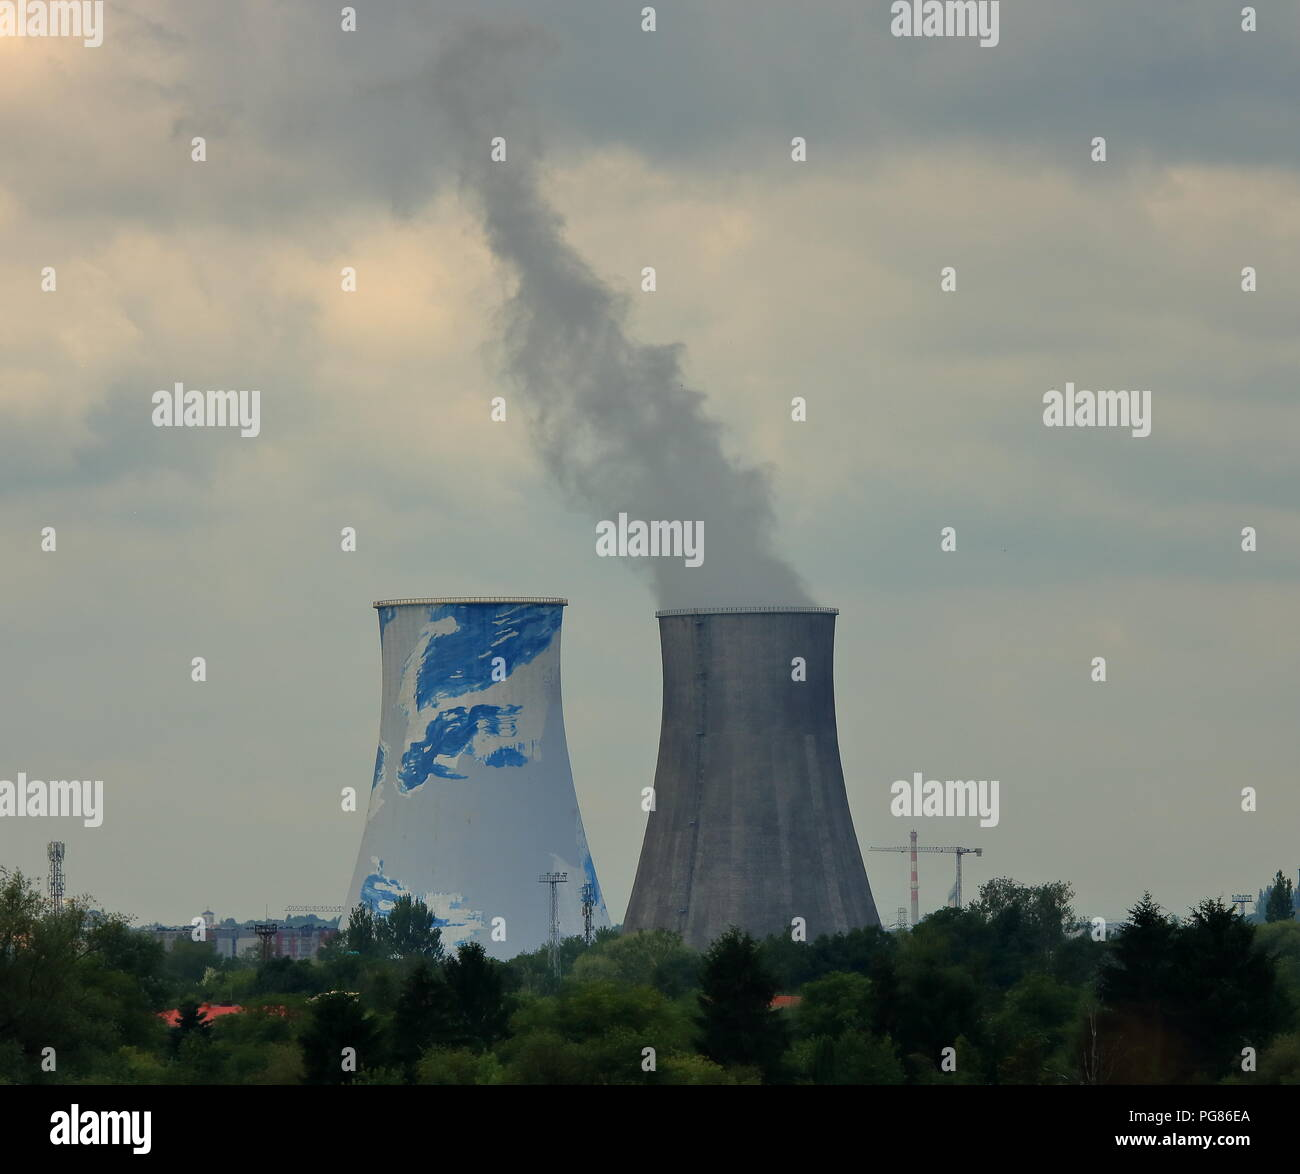 Two big chimneys of refinrey (factory), from one of them up in smoke, cloudy sky., - Stock Image